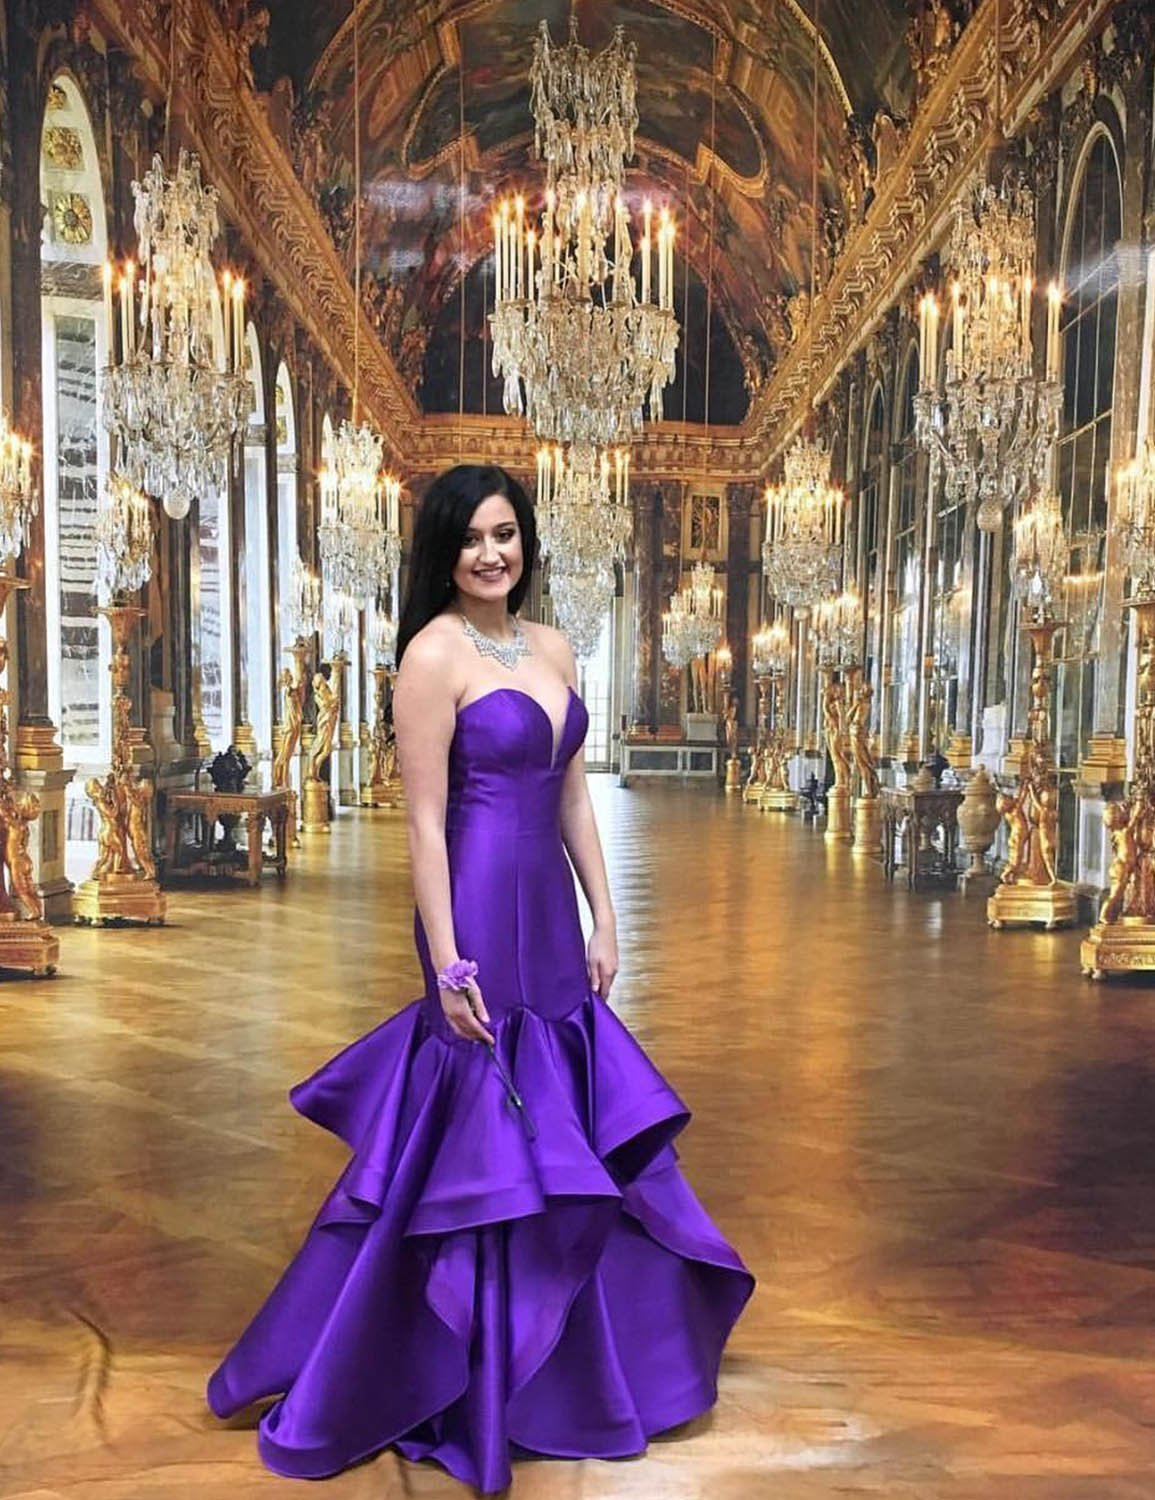 2019 Strapless Prom Dress Plus Size Empire Waist Mermaid Satin Formal Party  Gowns Homecoming Dresses for Girls Graduation Simple Ball Gown YW11 Purple  ...